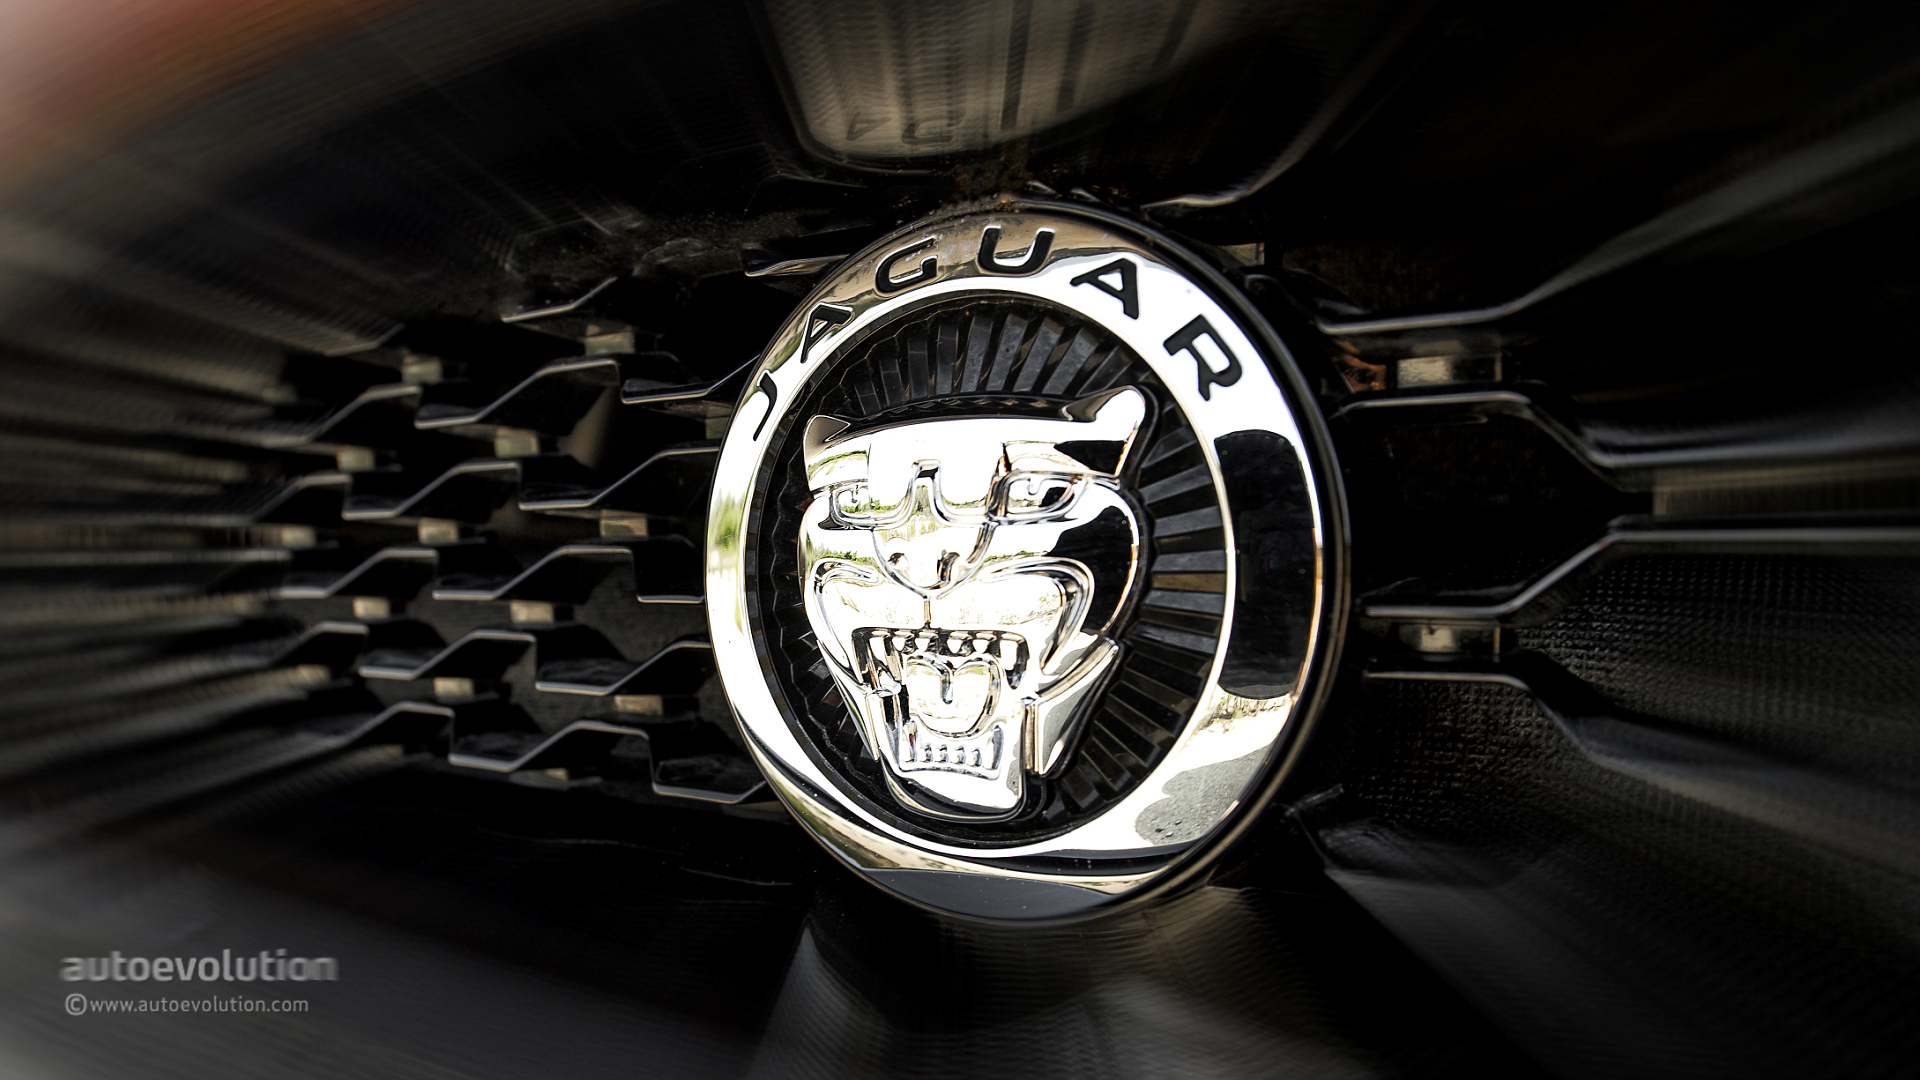 Jaguar to Drop Supercharged V6 for Turbo Straight Six, May